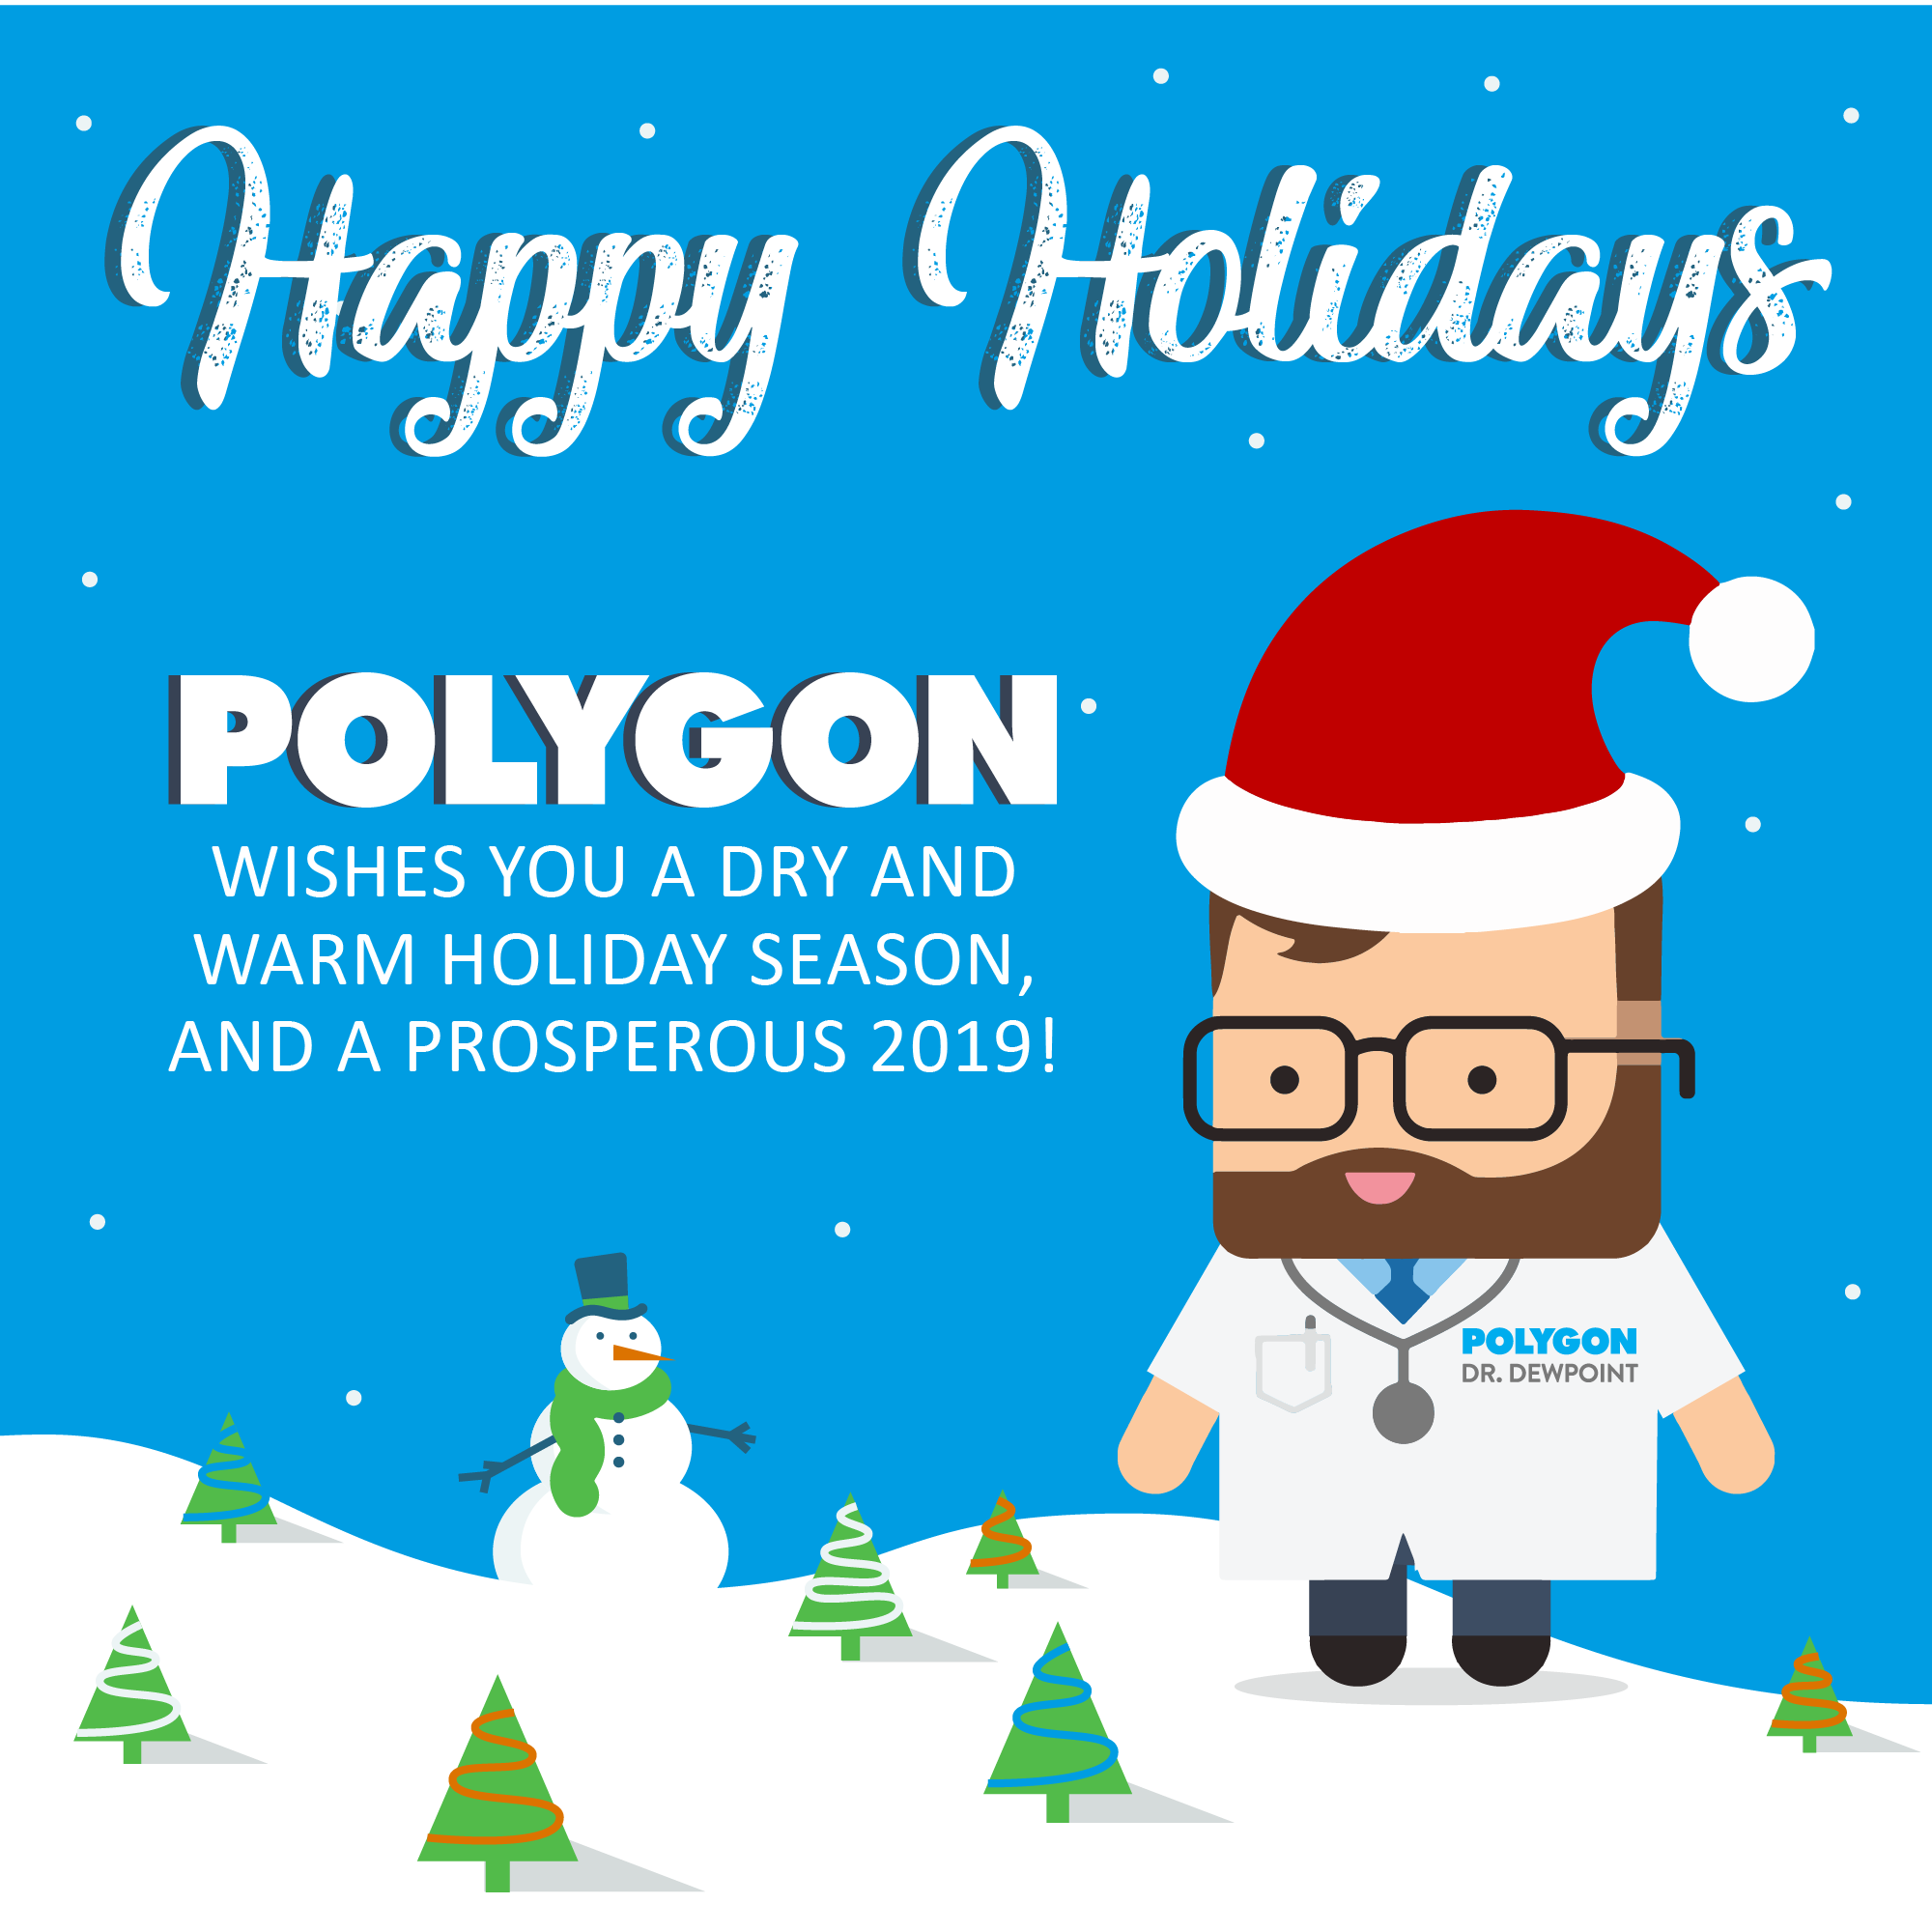 A Holiday Message from Polygon